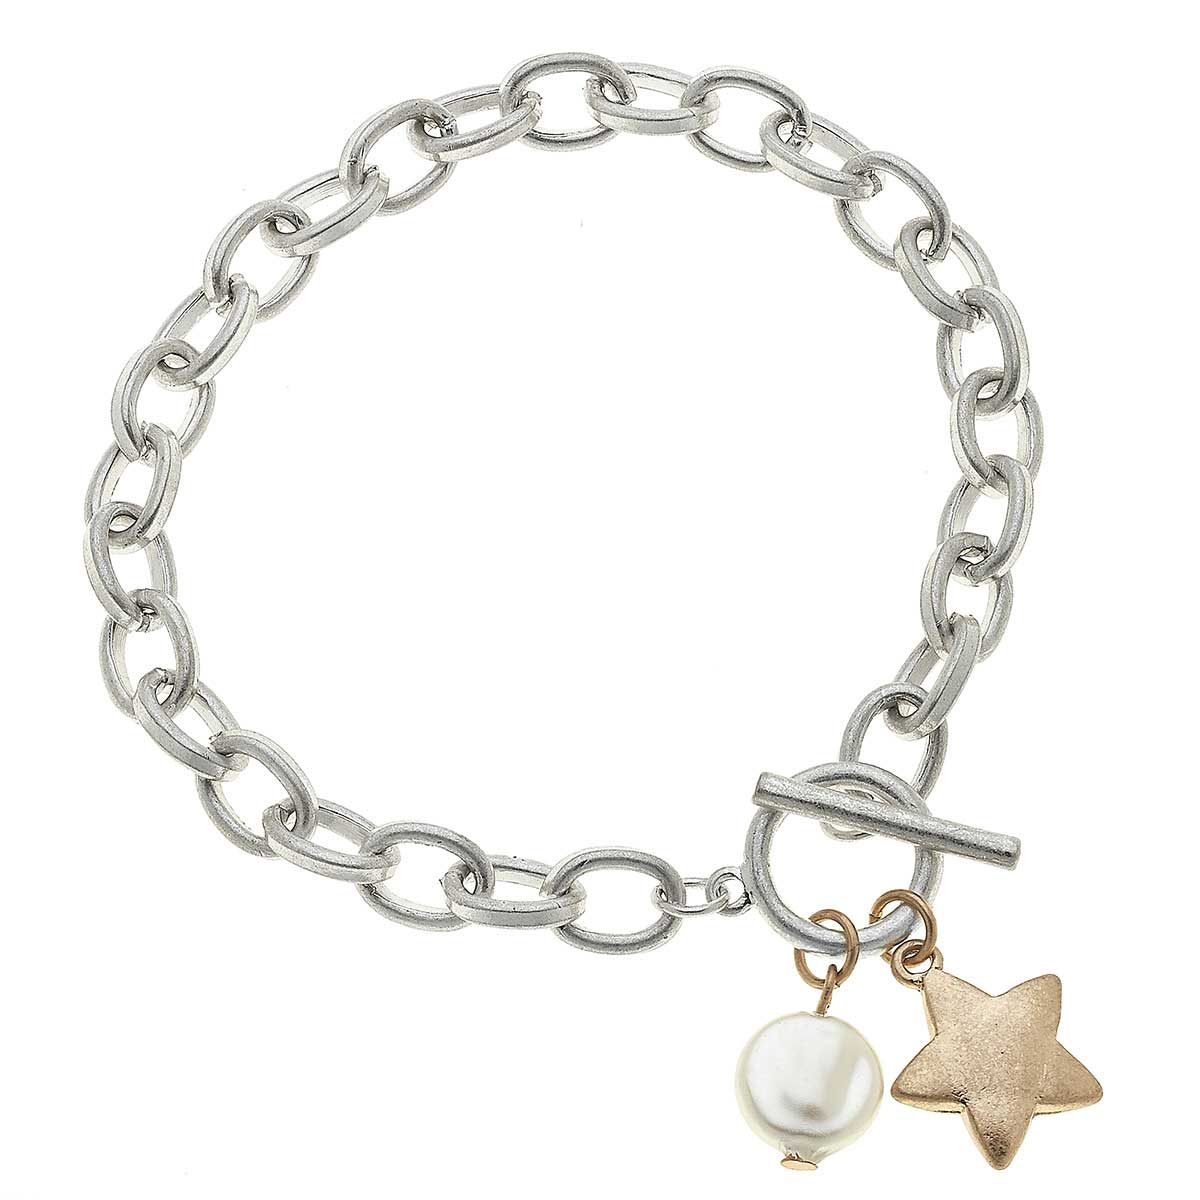 Claudia Star T-Bar Charm Bracelet in Worn Silver